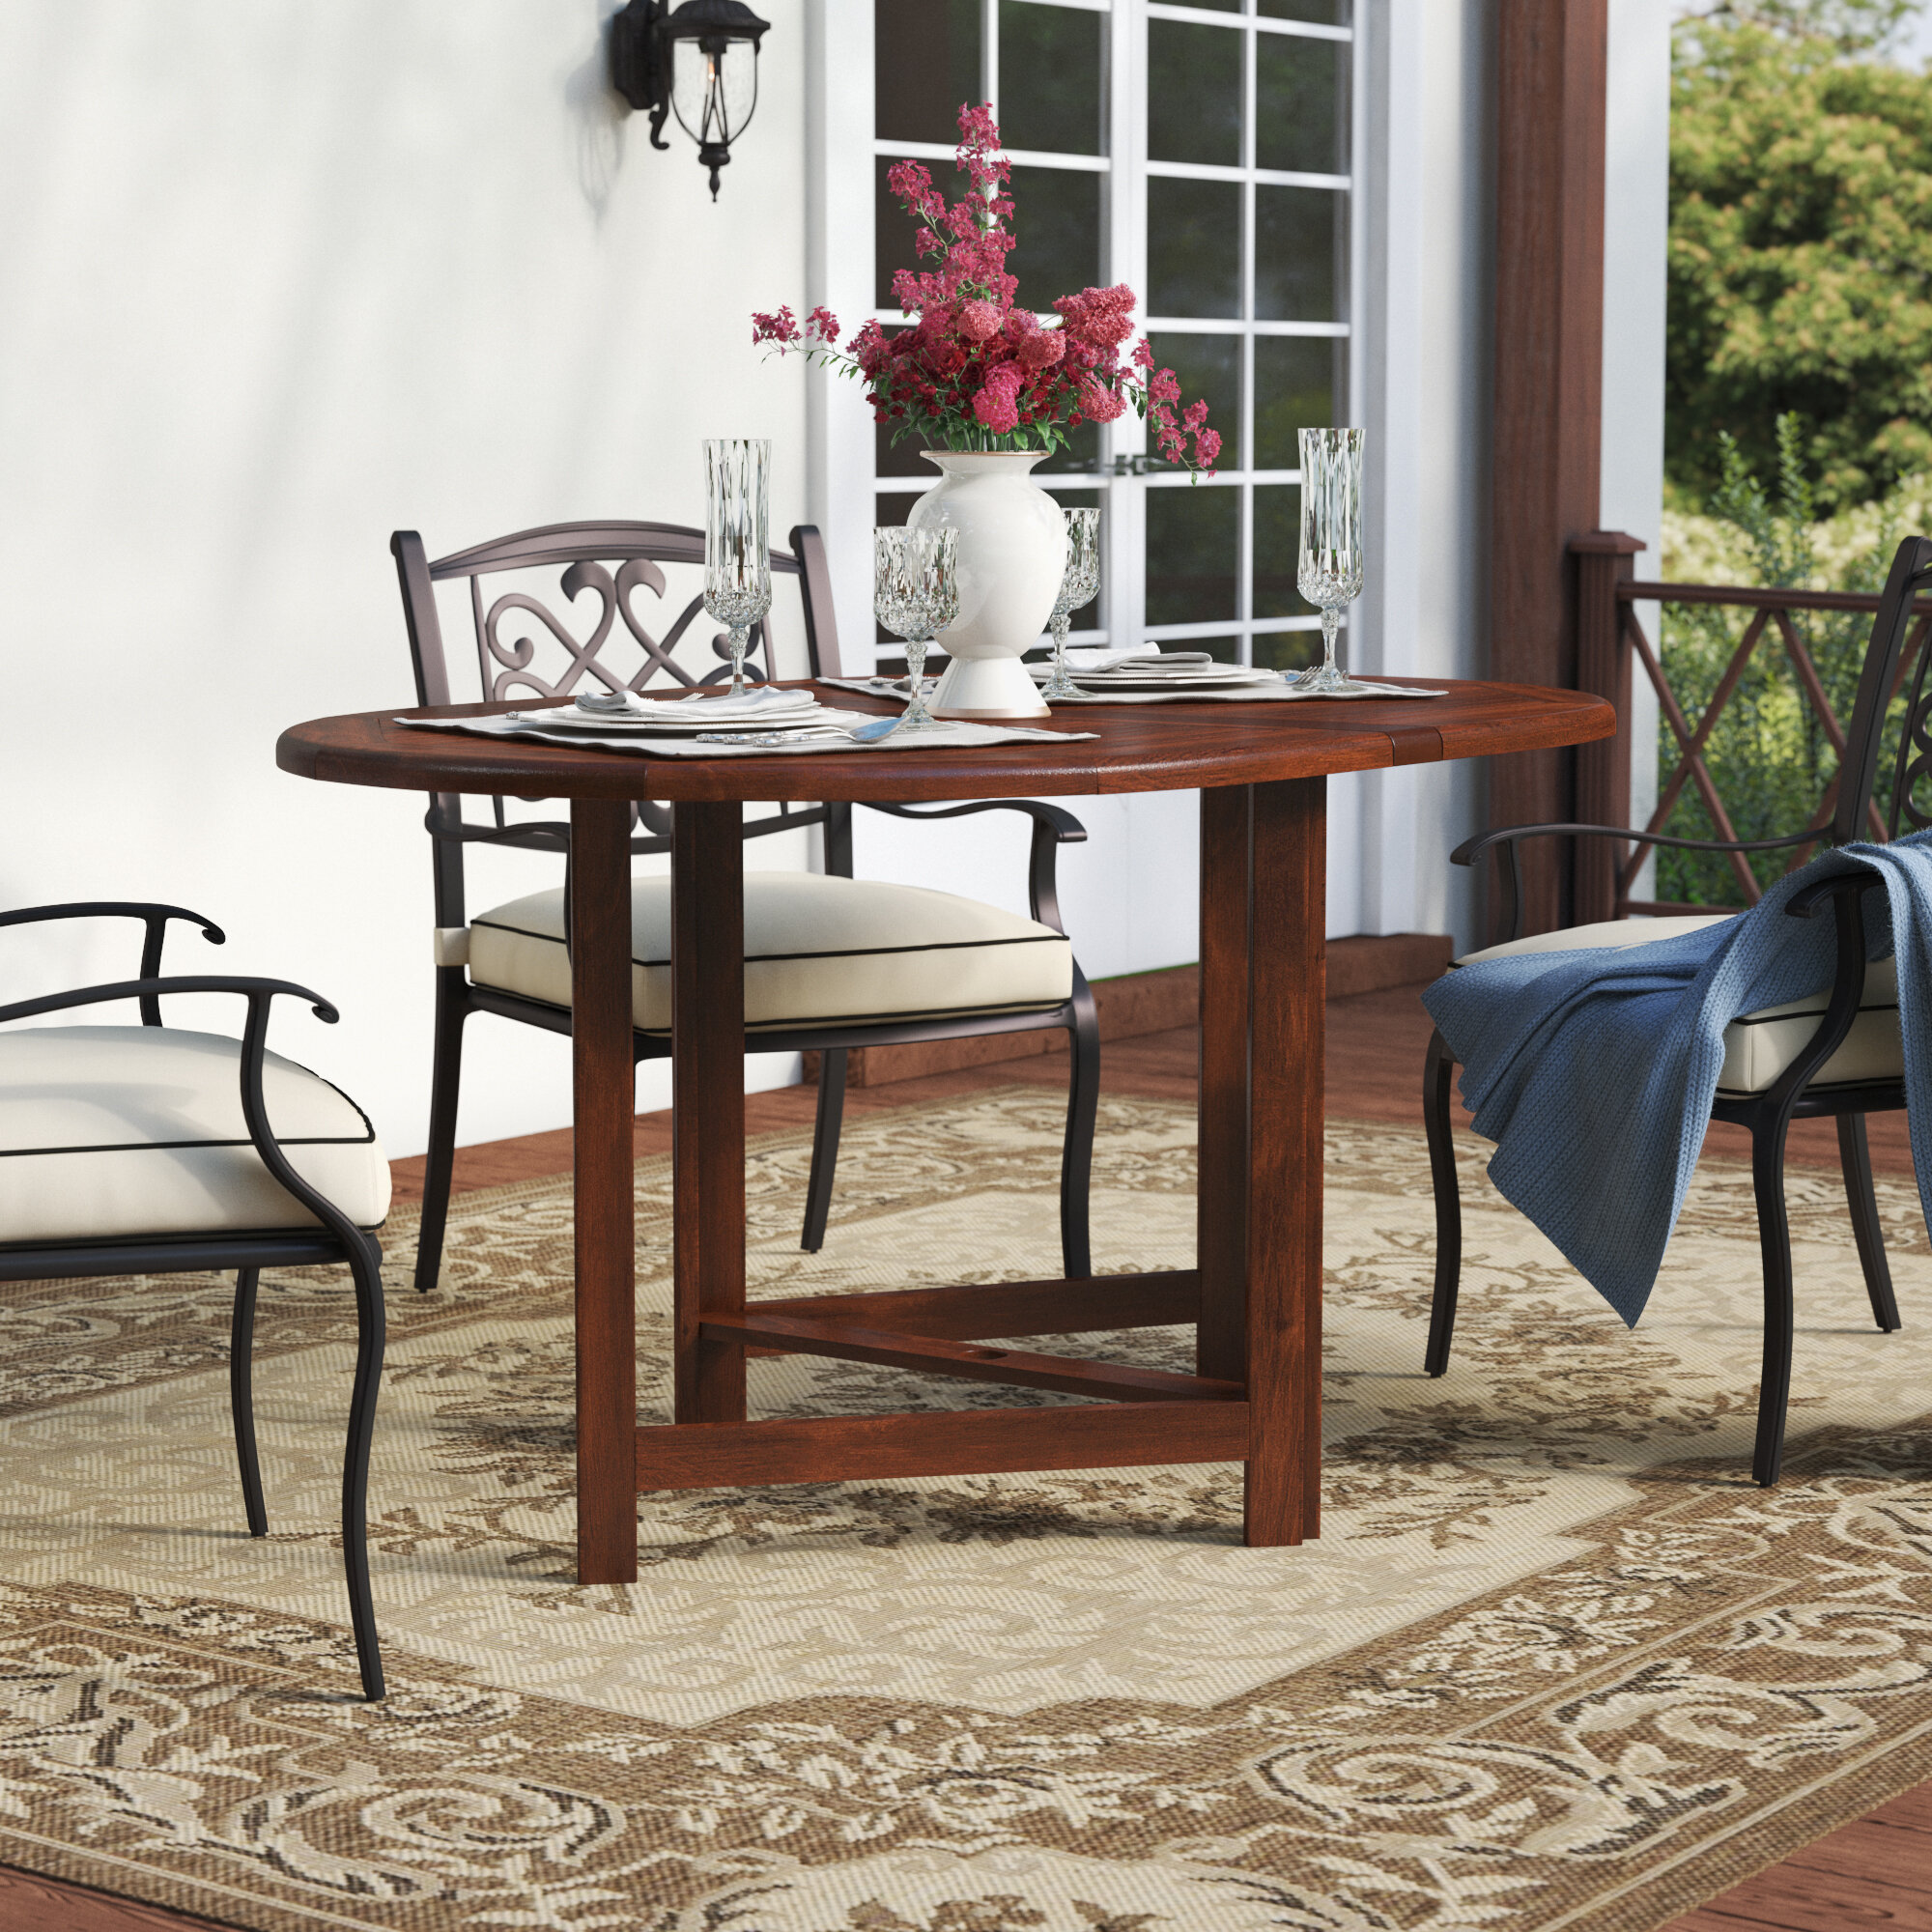 Beachcrest Home Pine Ridge Folding Solid Wood Dining Table Reviews Wayfair